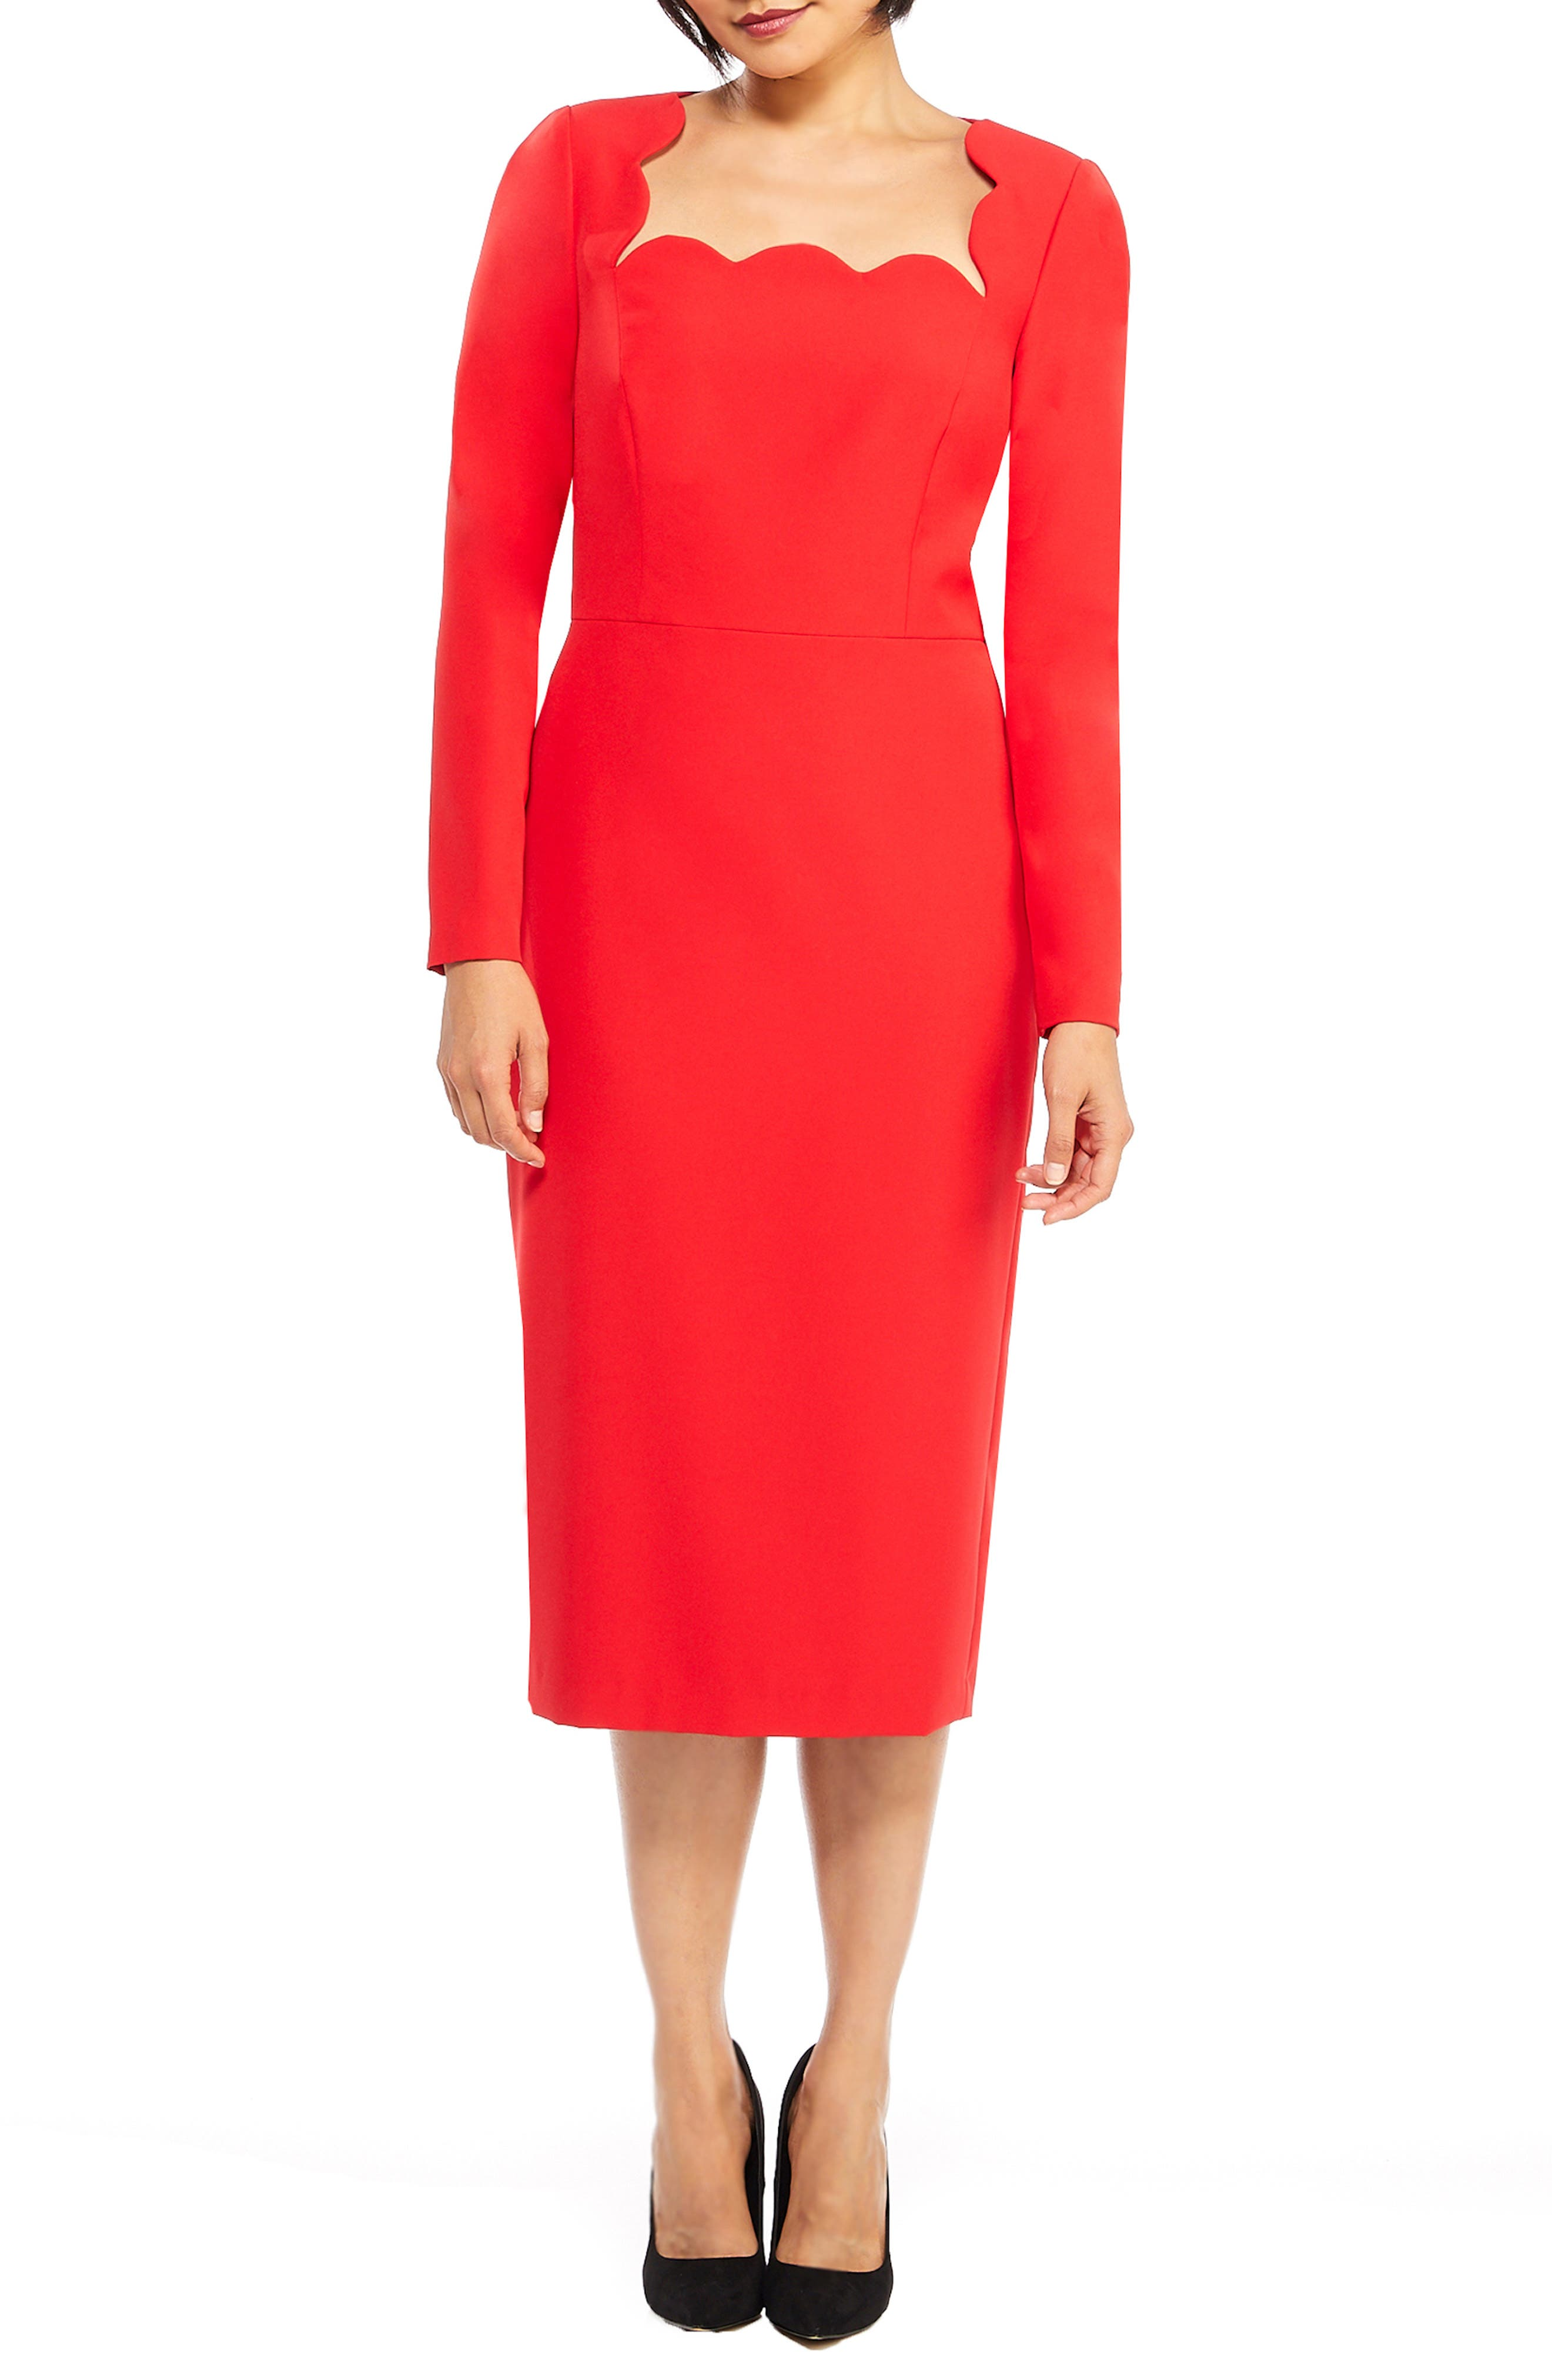 Vintage Christmas Dress | Party Dresses | Night Out Outfits Womens Maggy London Square Neck Dream Crepe Midi Dress Size 2 - Red $138.00 AT vintagedancer.com